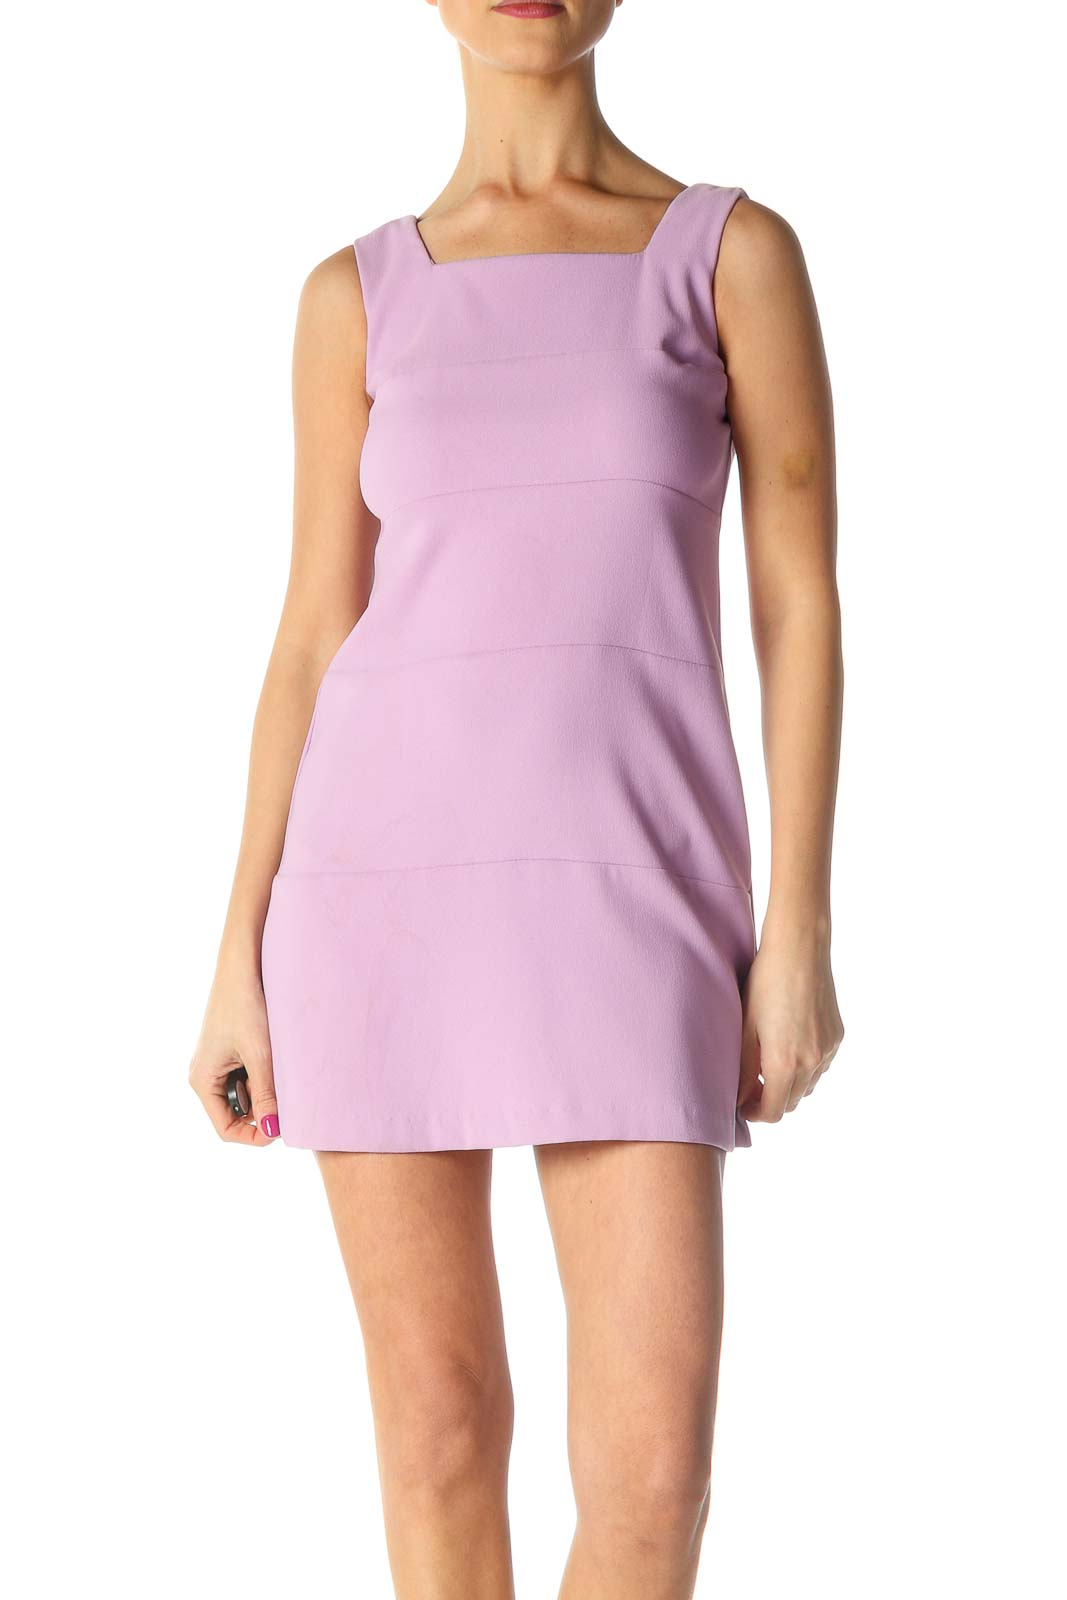 Pink Solid Chic A-Line Dress Front